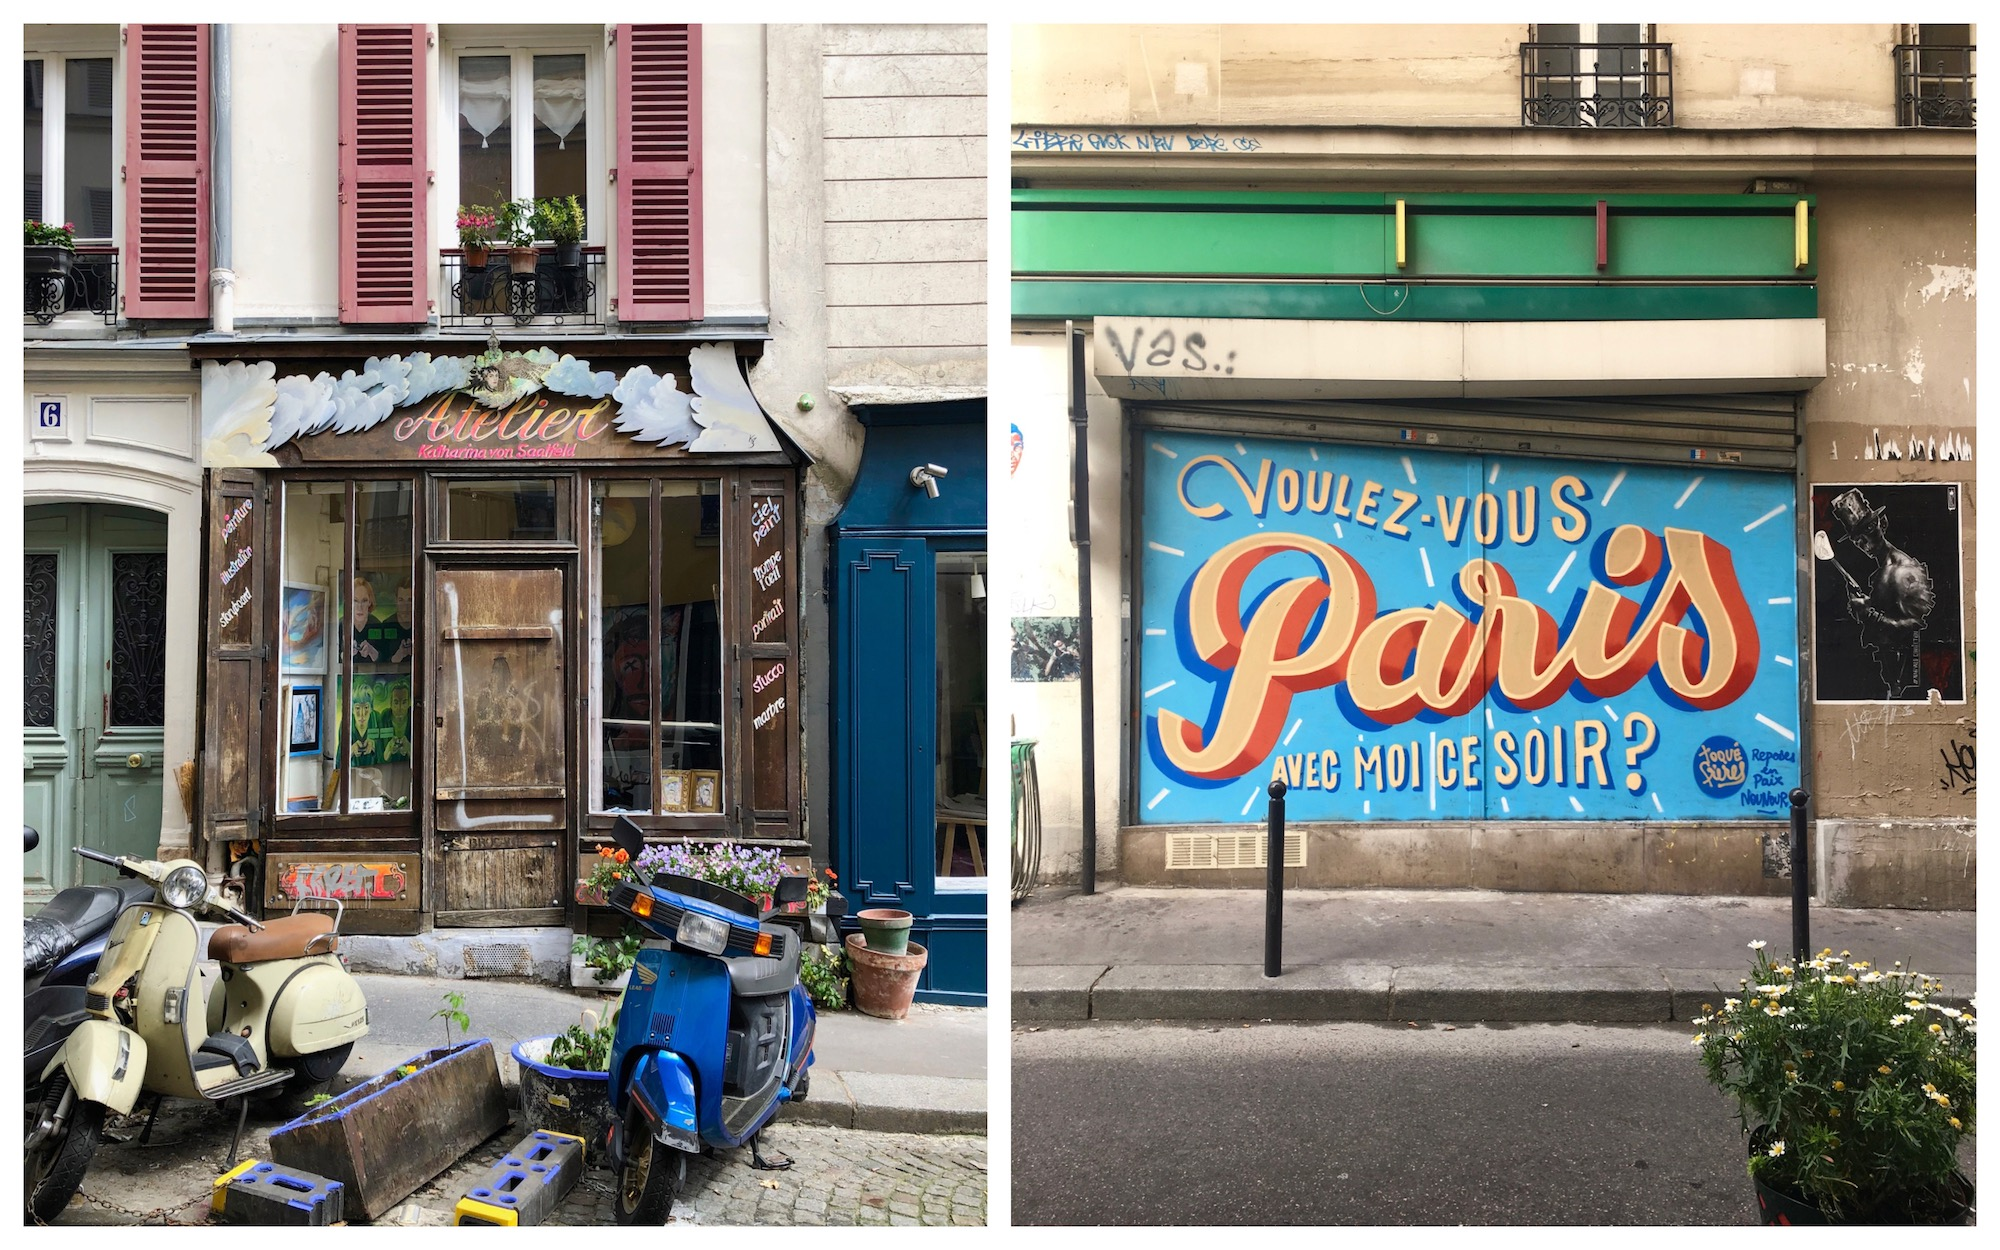 Living in Paris is all about spotting charming bars, restaurants and shops in the city, like this one with an old wood facade (left). Street art by the Toqué Frères on a shop front (right).